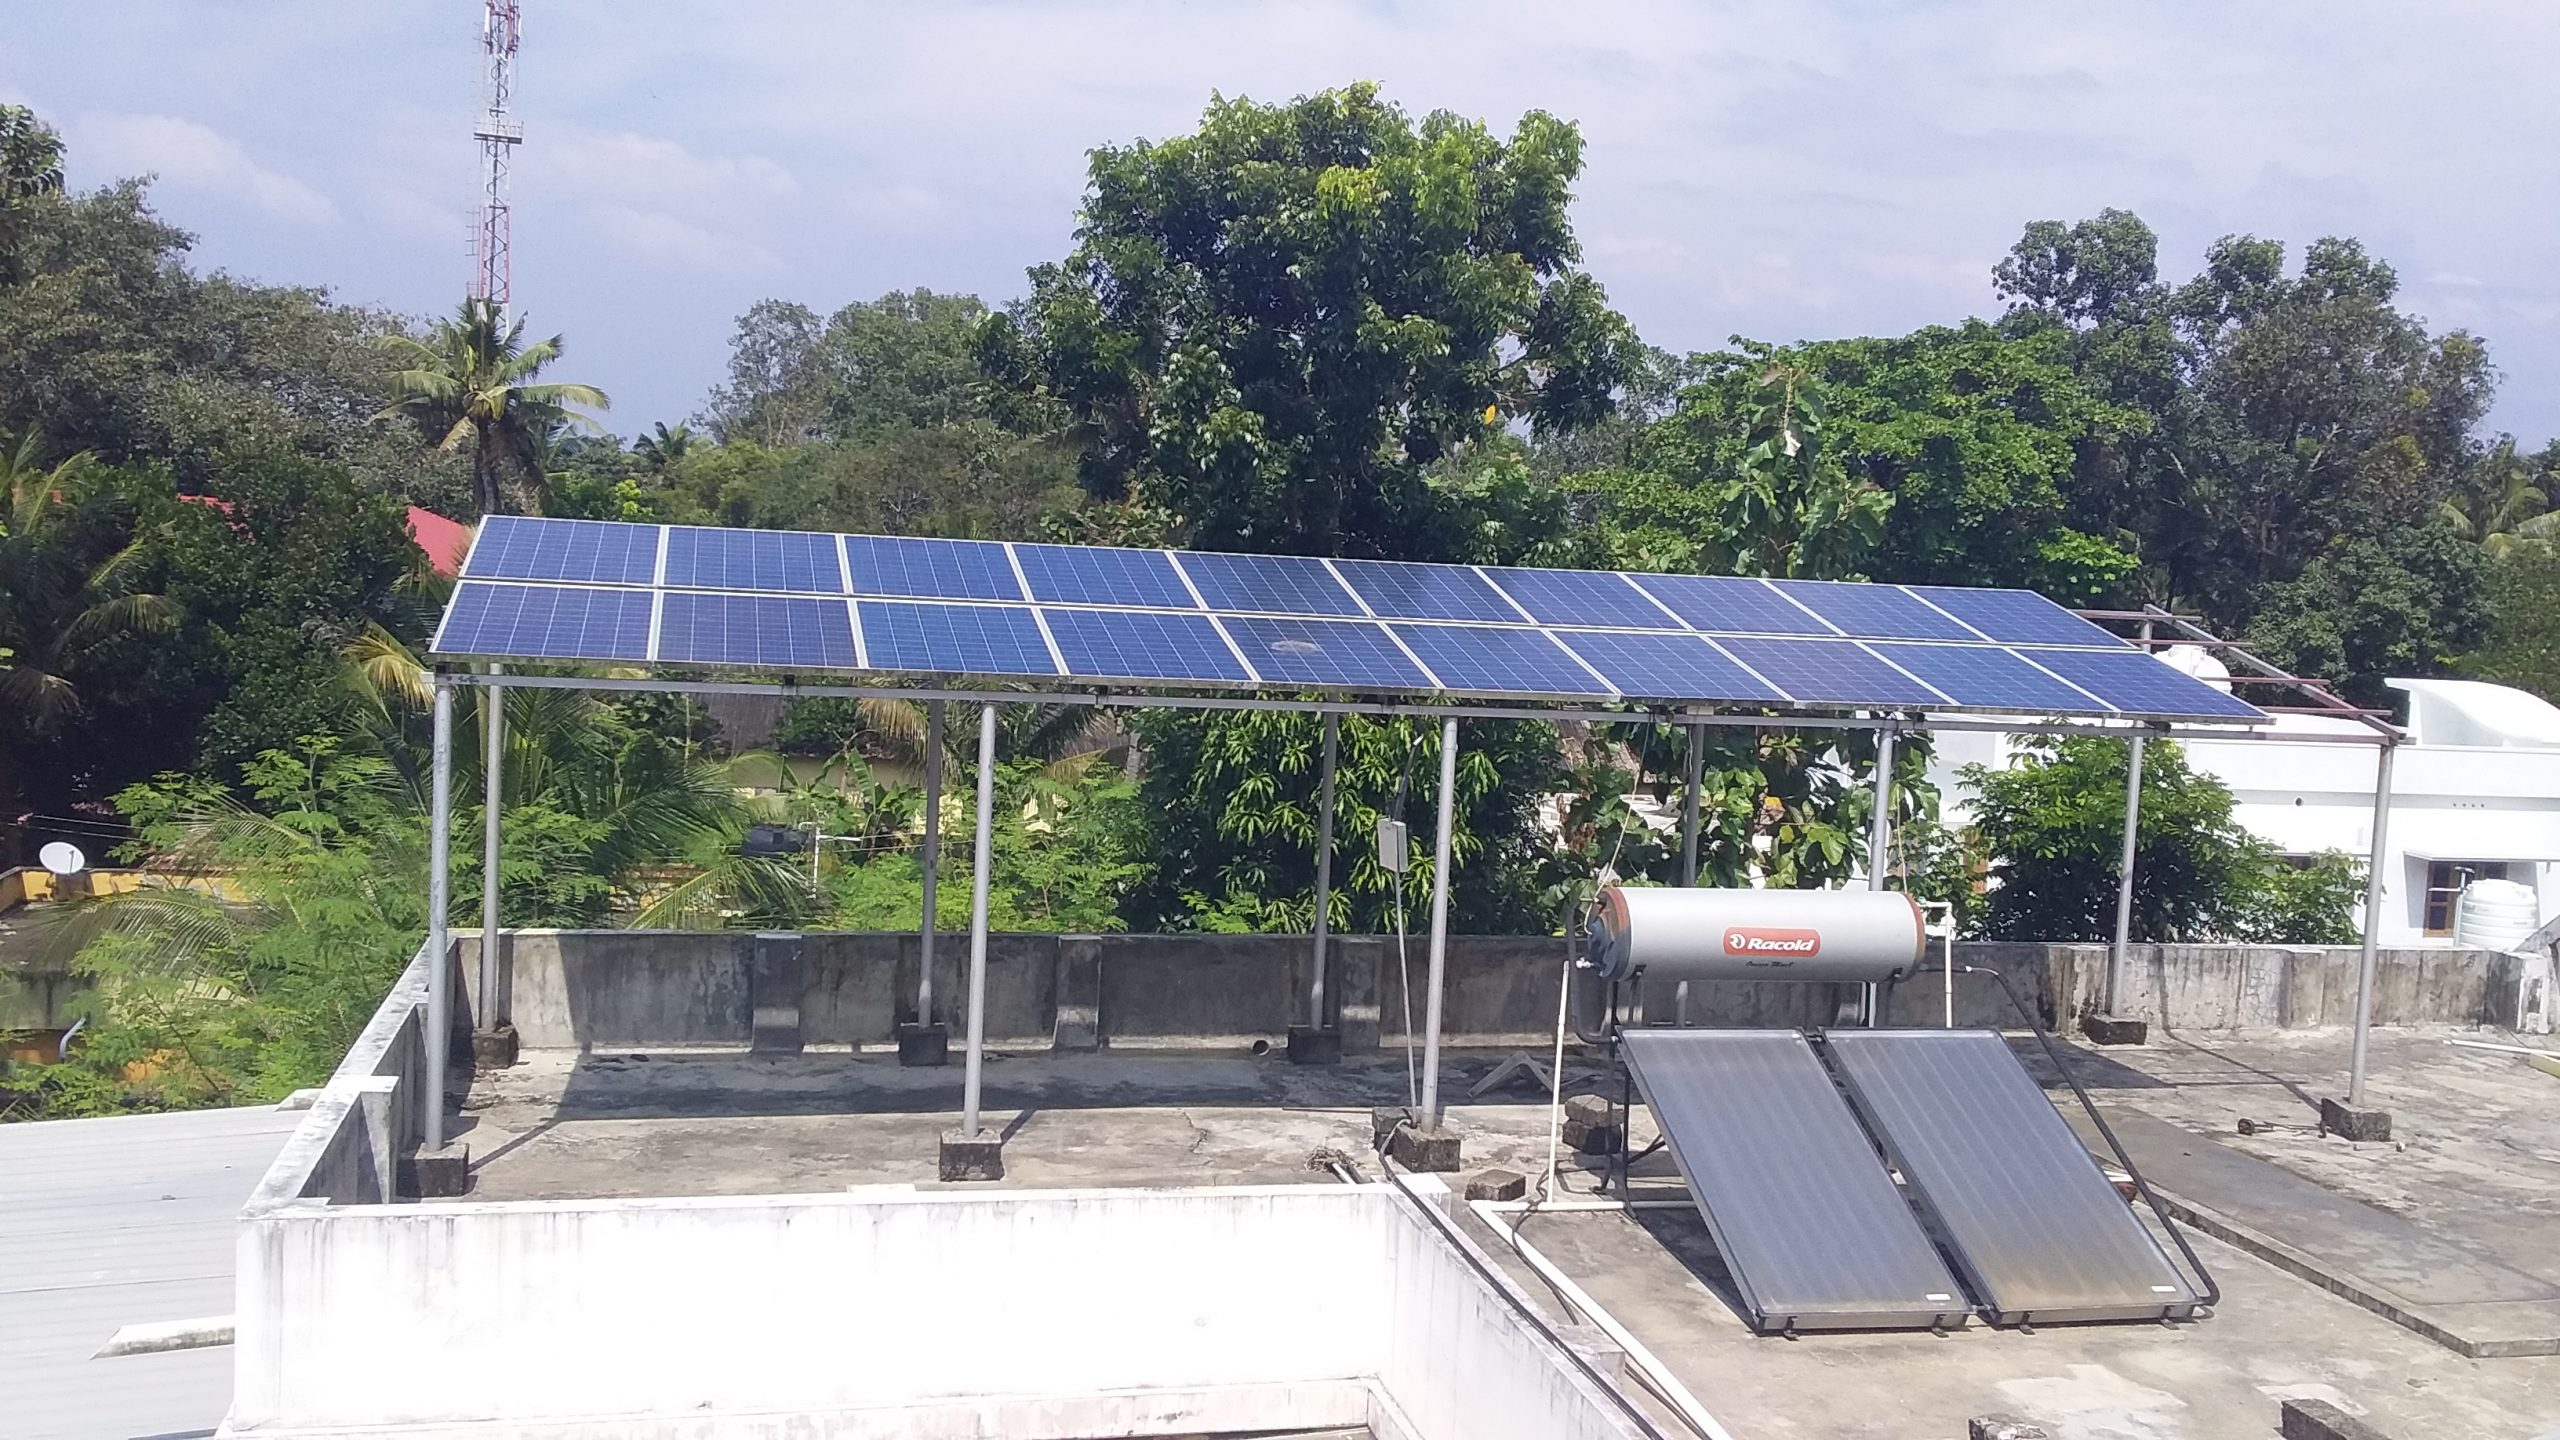 5kWp Solar Ongrid Power Plant at Chengannur, Alappuzha – with Efficient inverter Solar Companies in Pathanamthitta